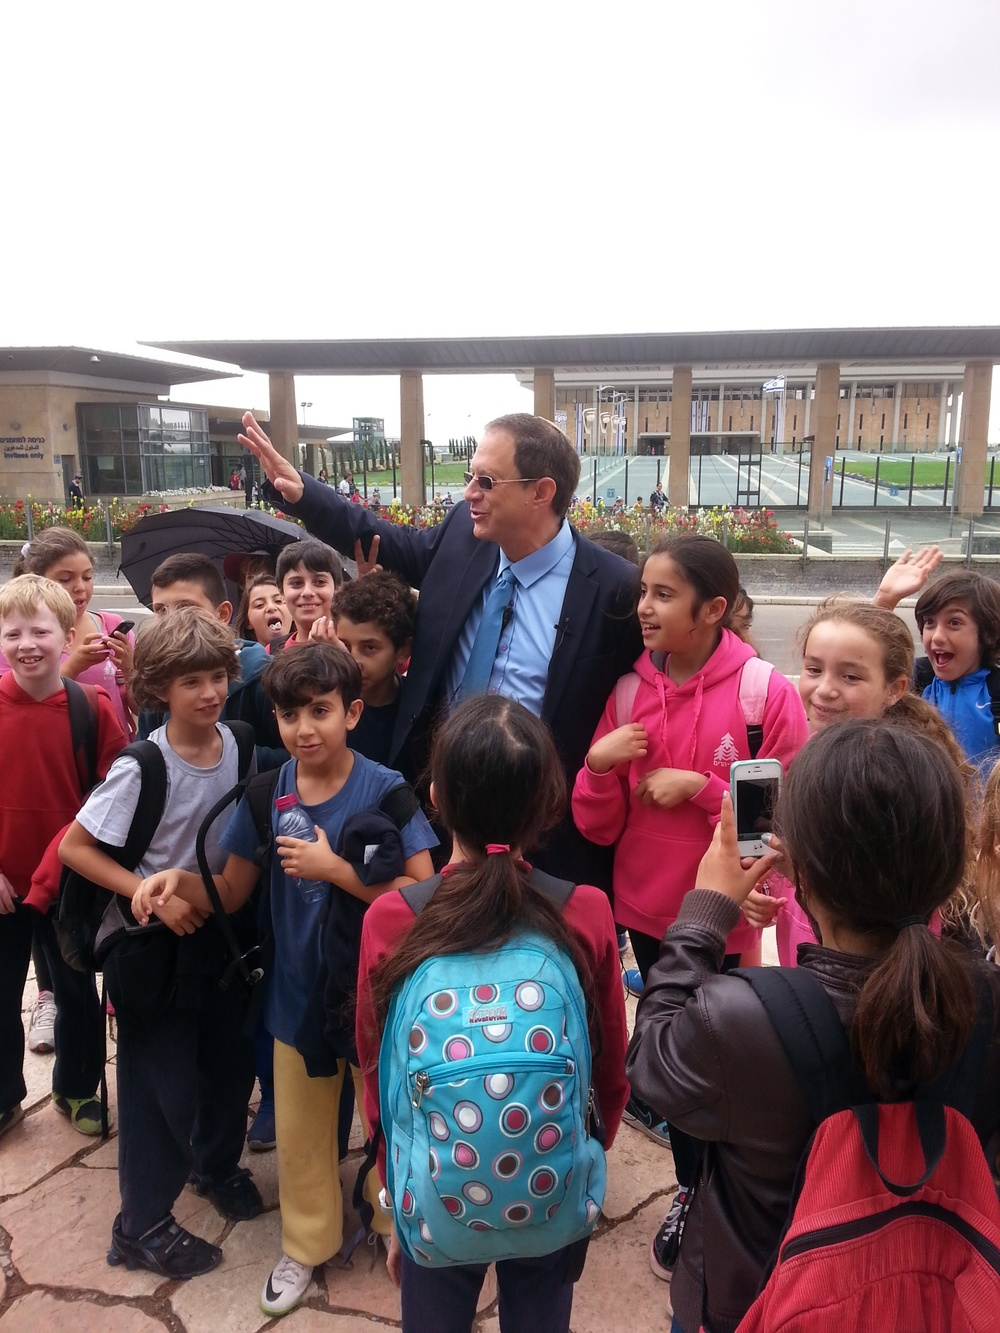 Click photo to download. Caption: Solar energy entrepreneur Yosef Abramowitz, an unexpected candidate for Israeli president, with schoolchildren in Israel. Credit: Provided photo.